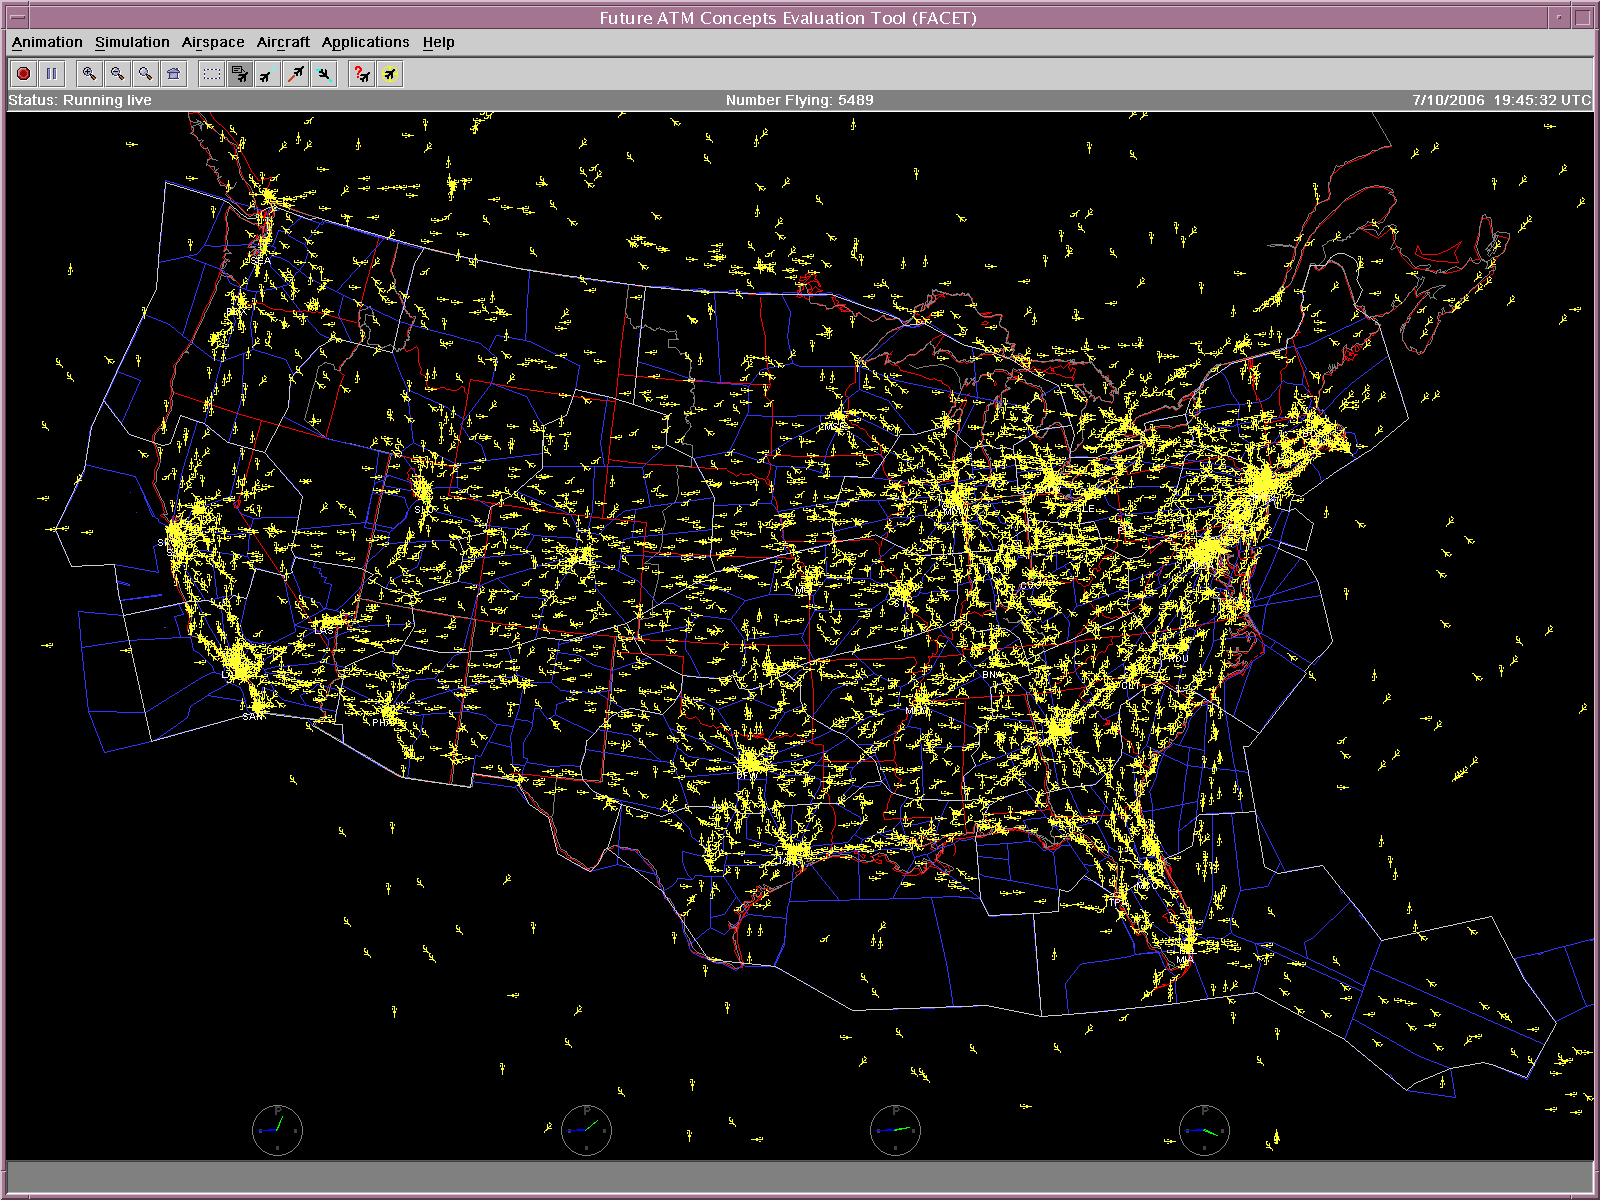 Smart nas for safe trajectory based operations project description smart nas for safe trajectory based operations project description nasa publicscrutiny Choice Image